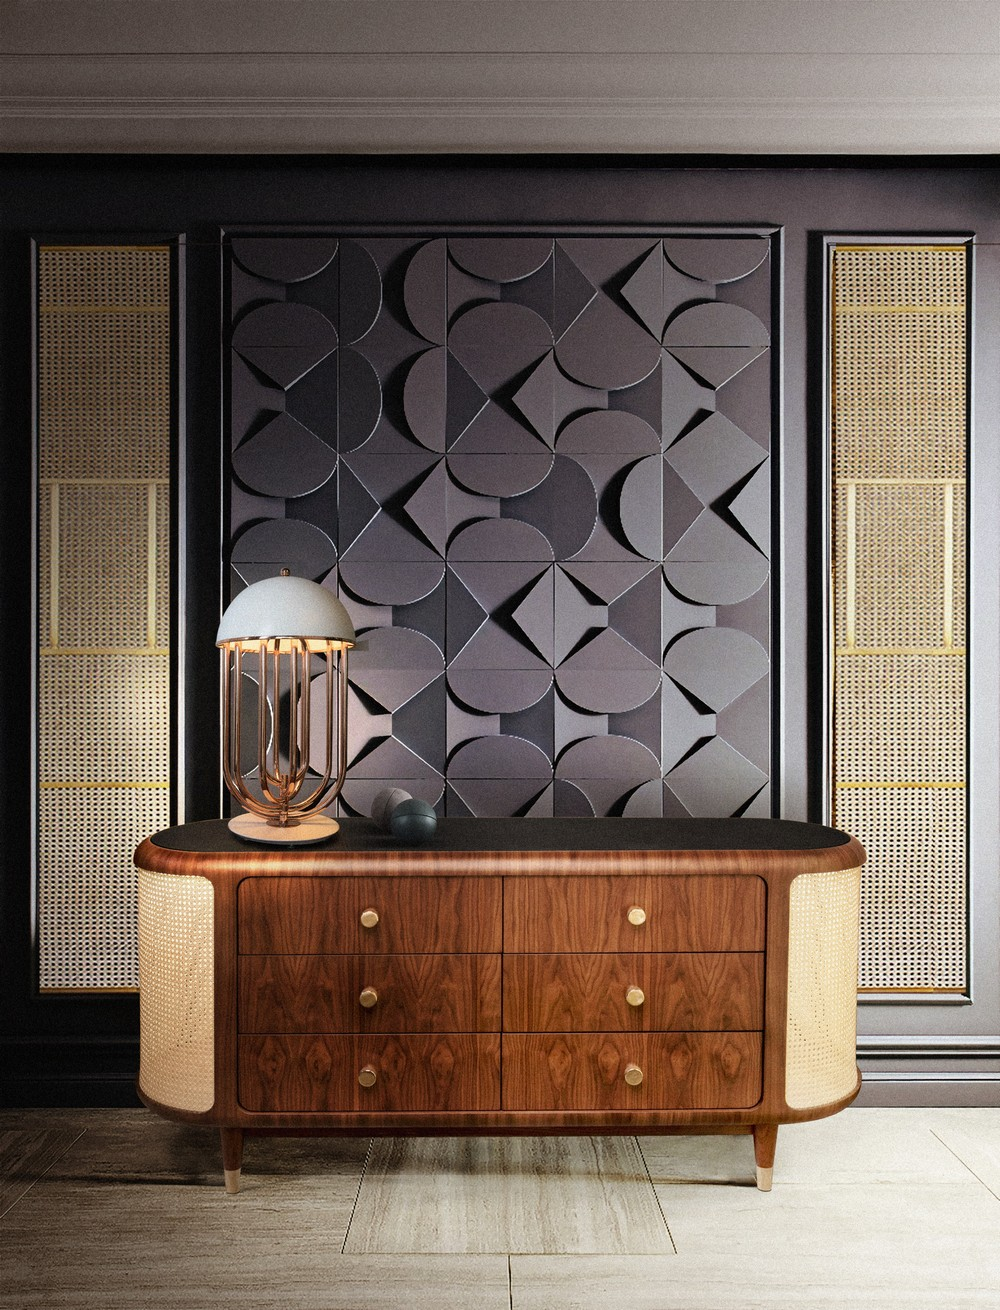 25 Luxury Sideboards Consoles to Consider for a Bold Design Concept 2 luxury sideboards 25 Luxury Sideboards & Consoles to Consider for a Bold Design Concept 25 Luxury Sideboards Consoles to Consider for a Bold Design Concept 2